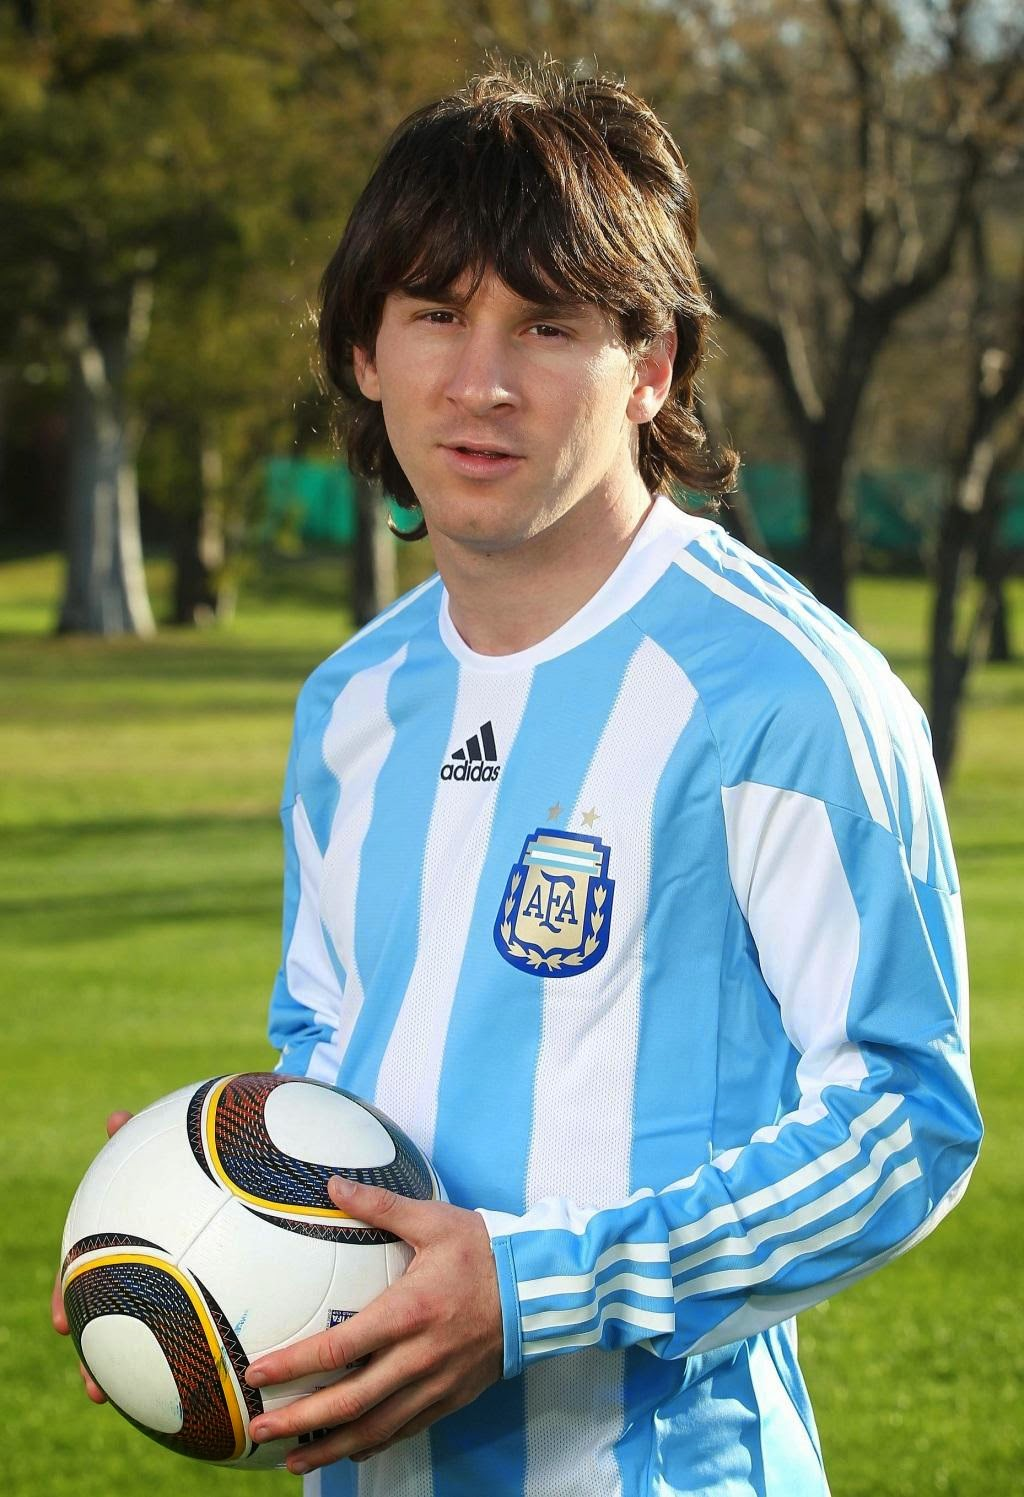 Tremendous Lionel Messi Hairstyles Smile Photos Hairstyles Photos And Pictures Hairstyle Inspiration Daily Dogsangcom